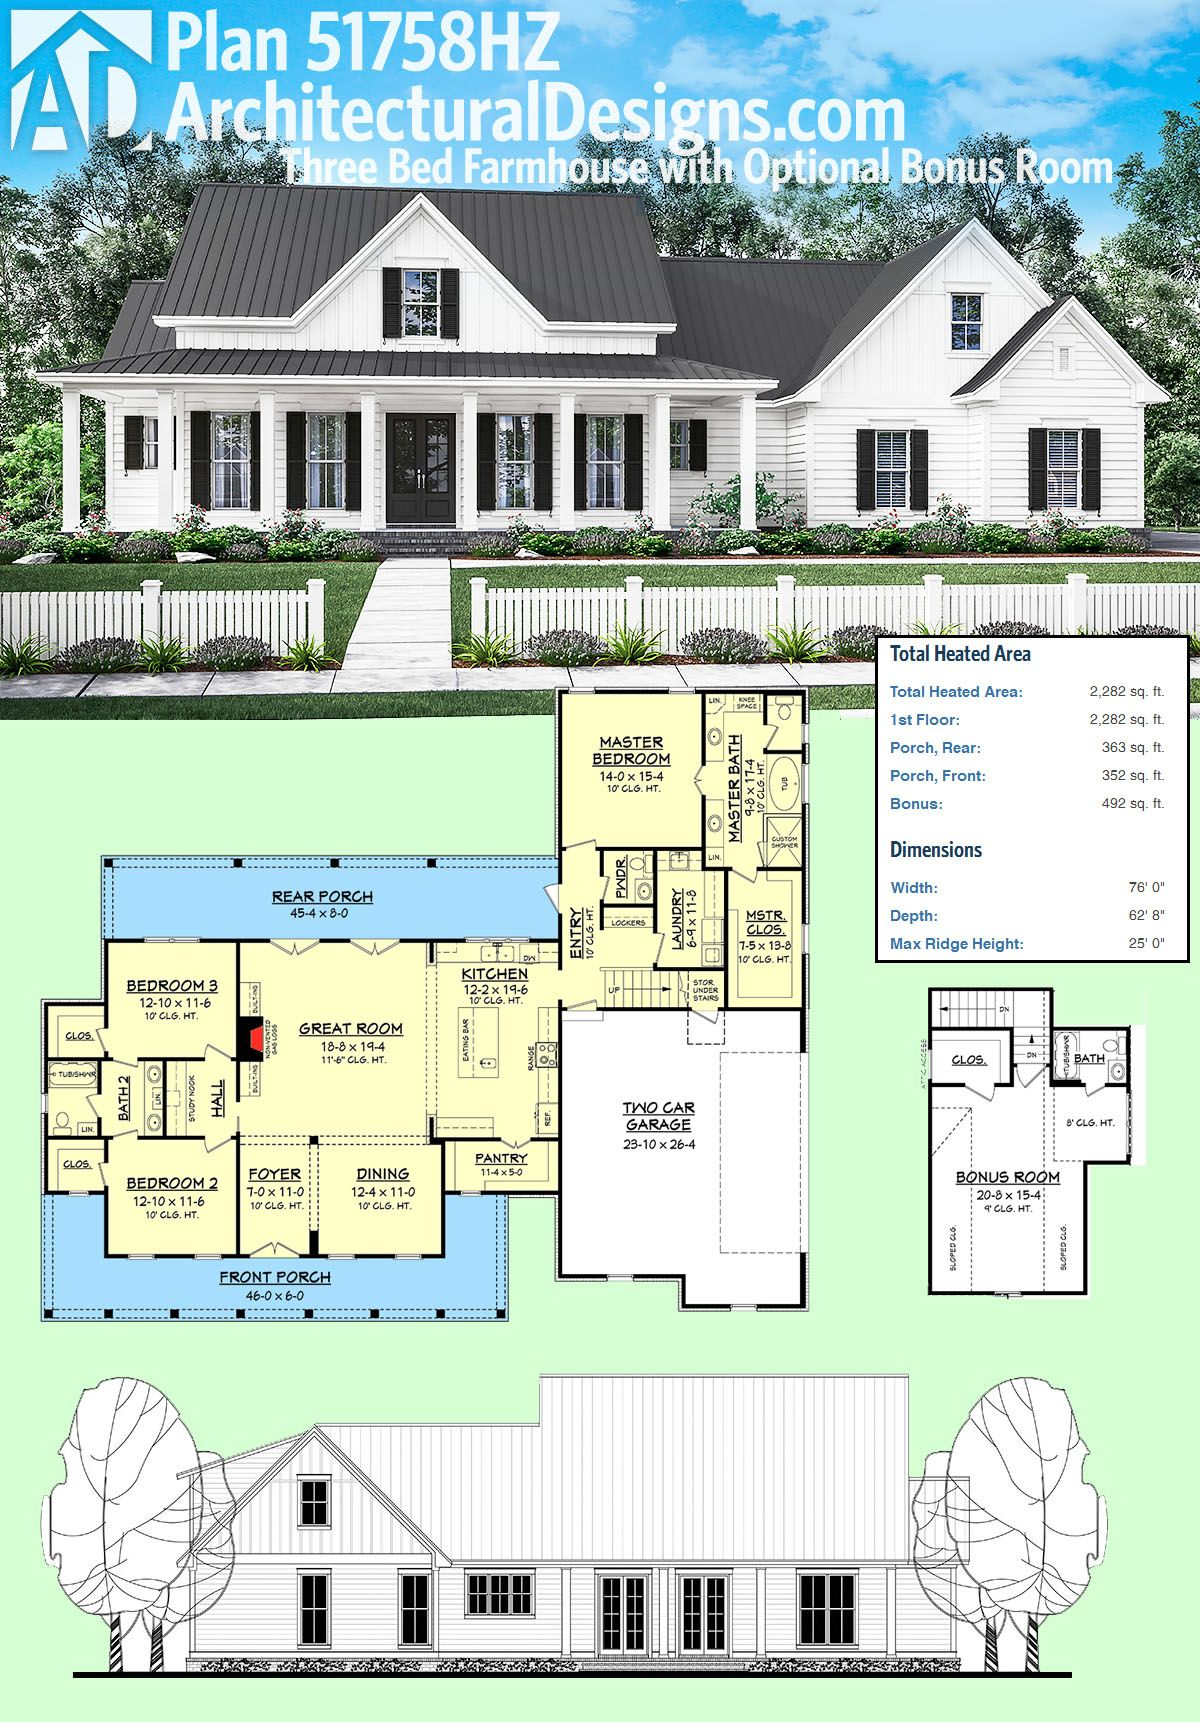 Bed Design Plans Architectural Designs Plan 51758hz Is A 3 Bed Farmhouse